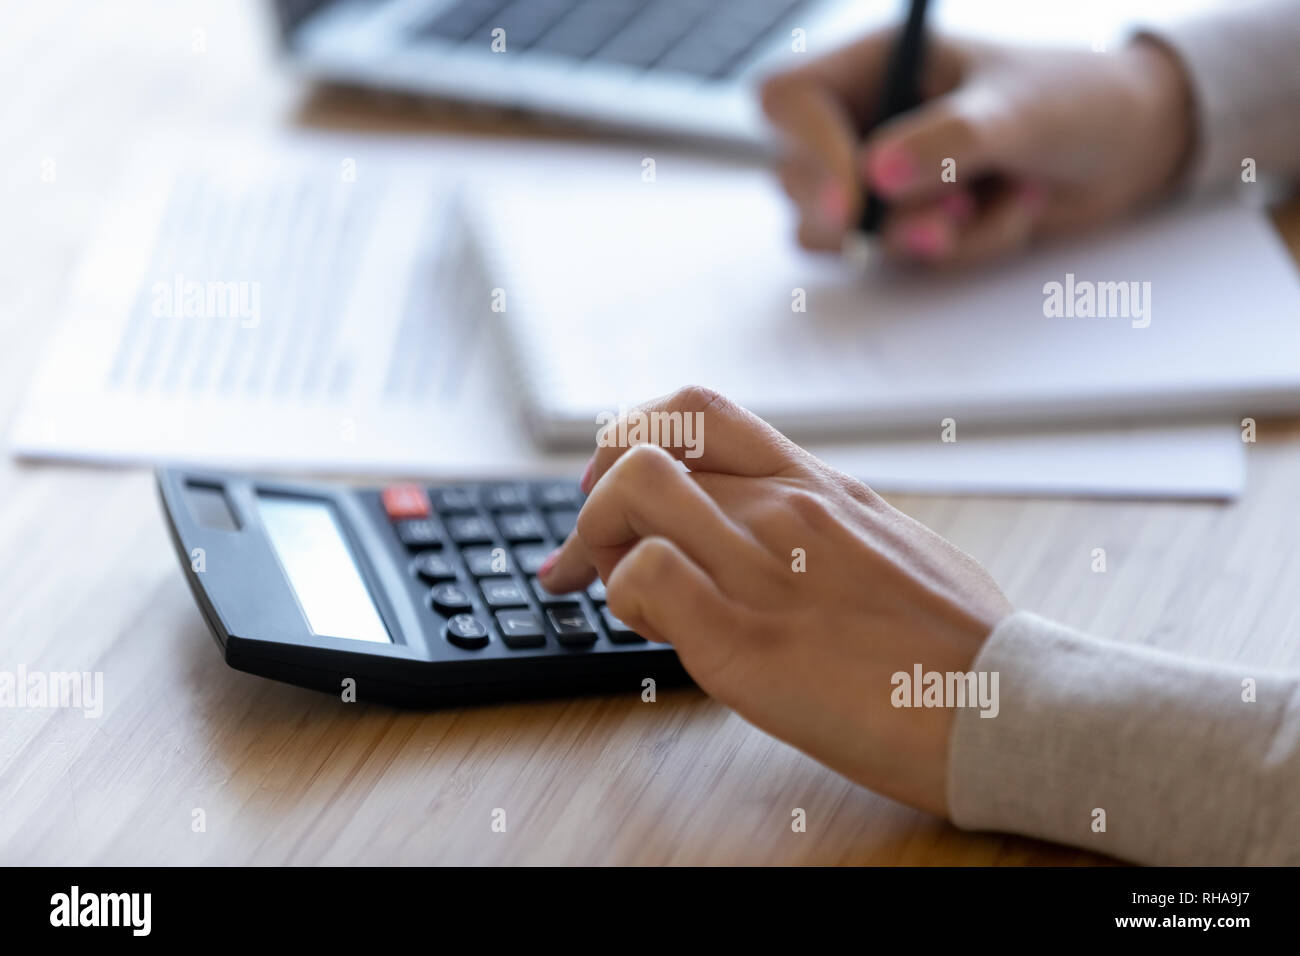 Female professional using calculator for business financial accounting, close up - Stock Image